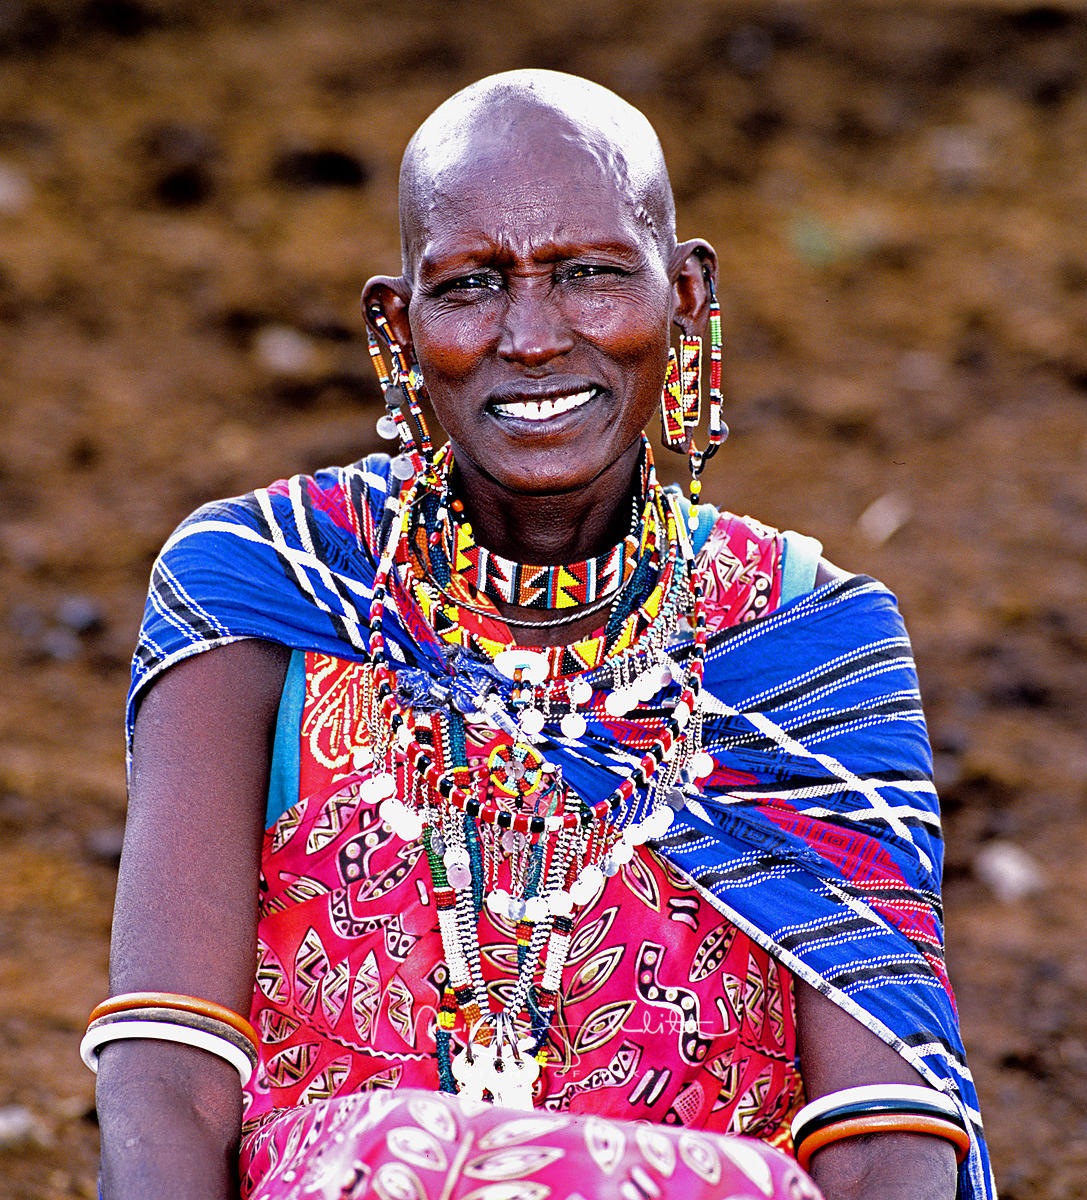 Africa_Woman_ear_hole_sitting_cropped_tweeked